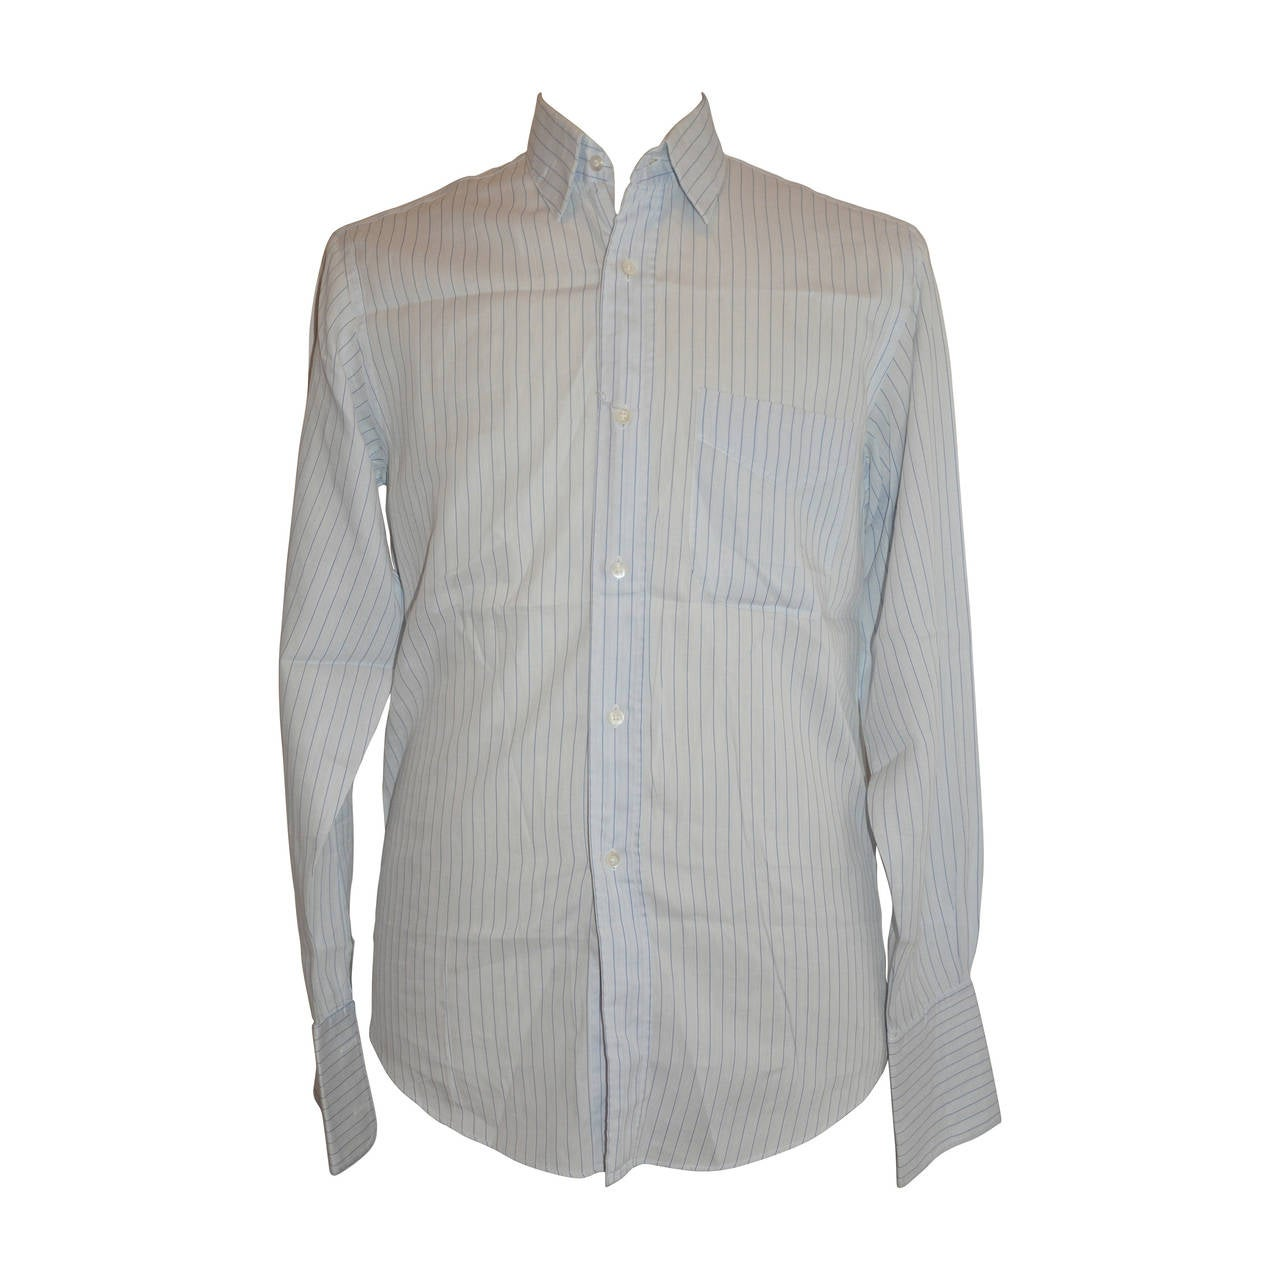 "Hermes Men's ""Shades of Blue"" Pinstripe Button Shirt"